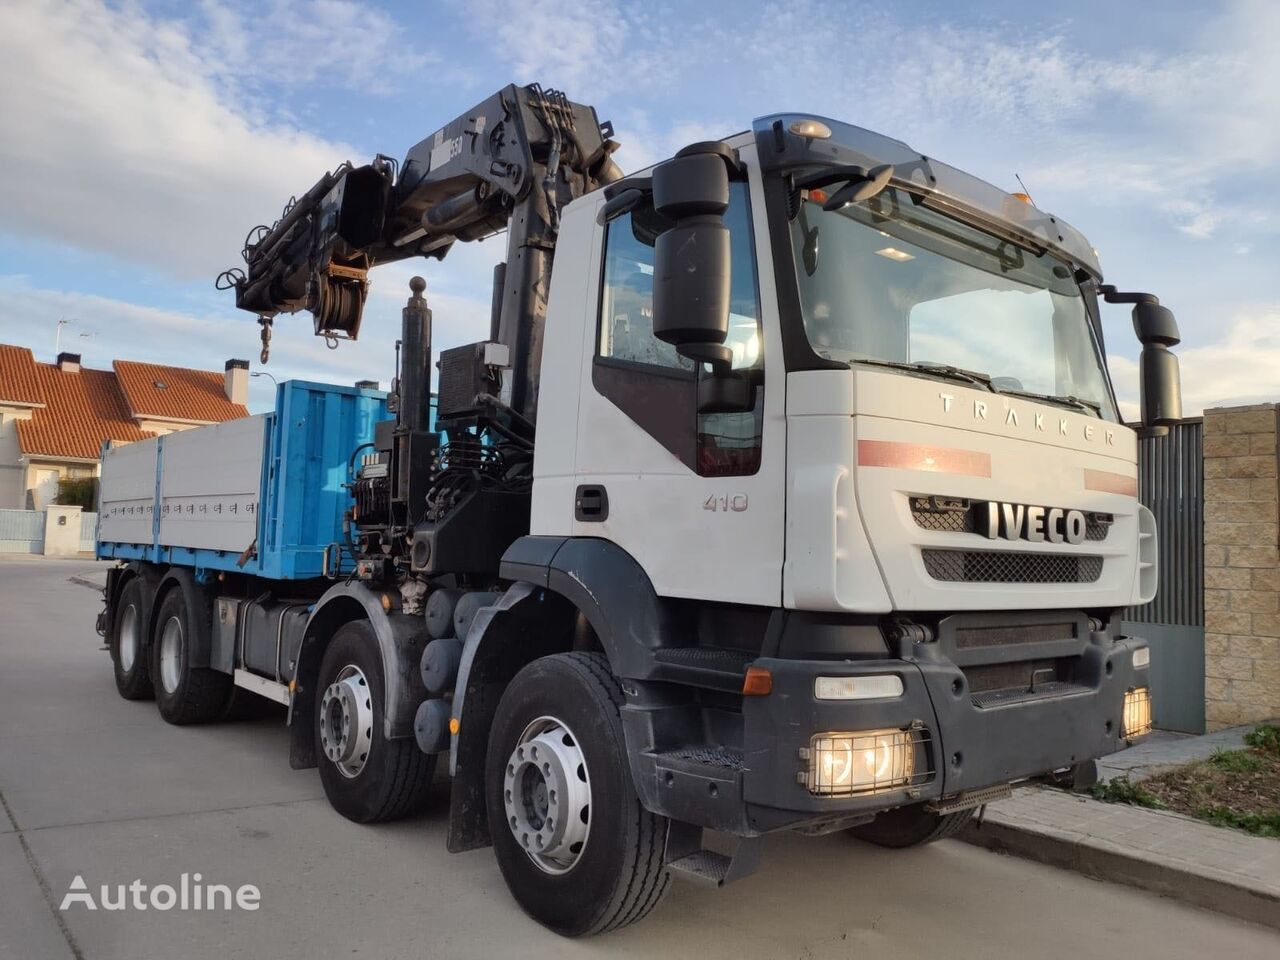 IVECO 410 flatbed truck